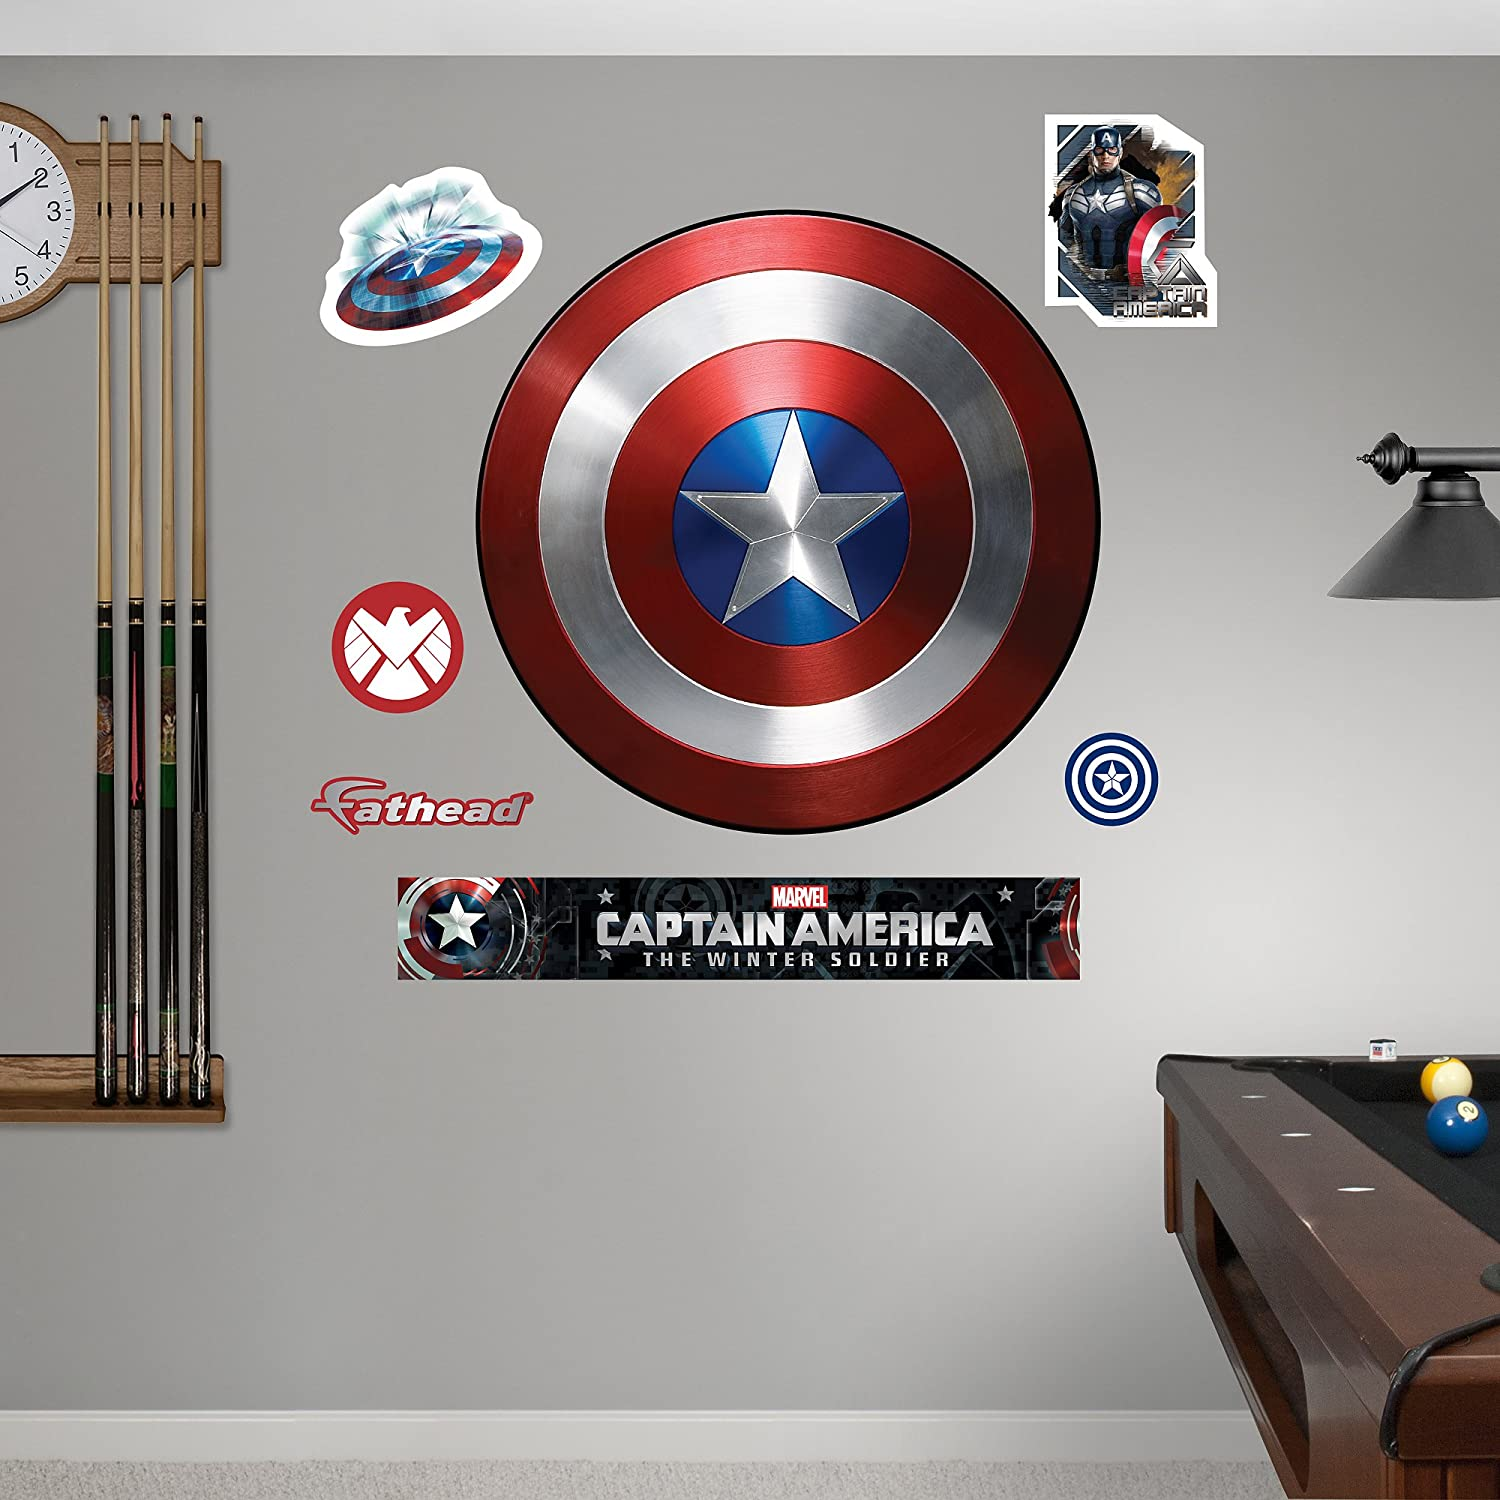 FATHEAD Captain America: The Winter Soldier-Vibranium Shield Real Big Wall Decal